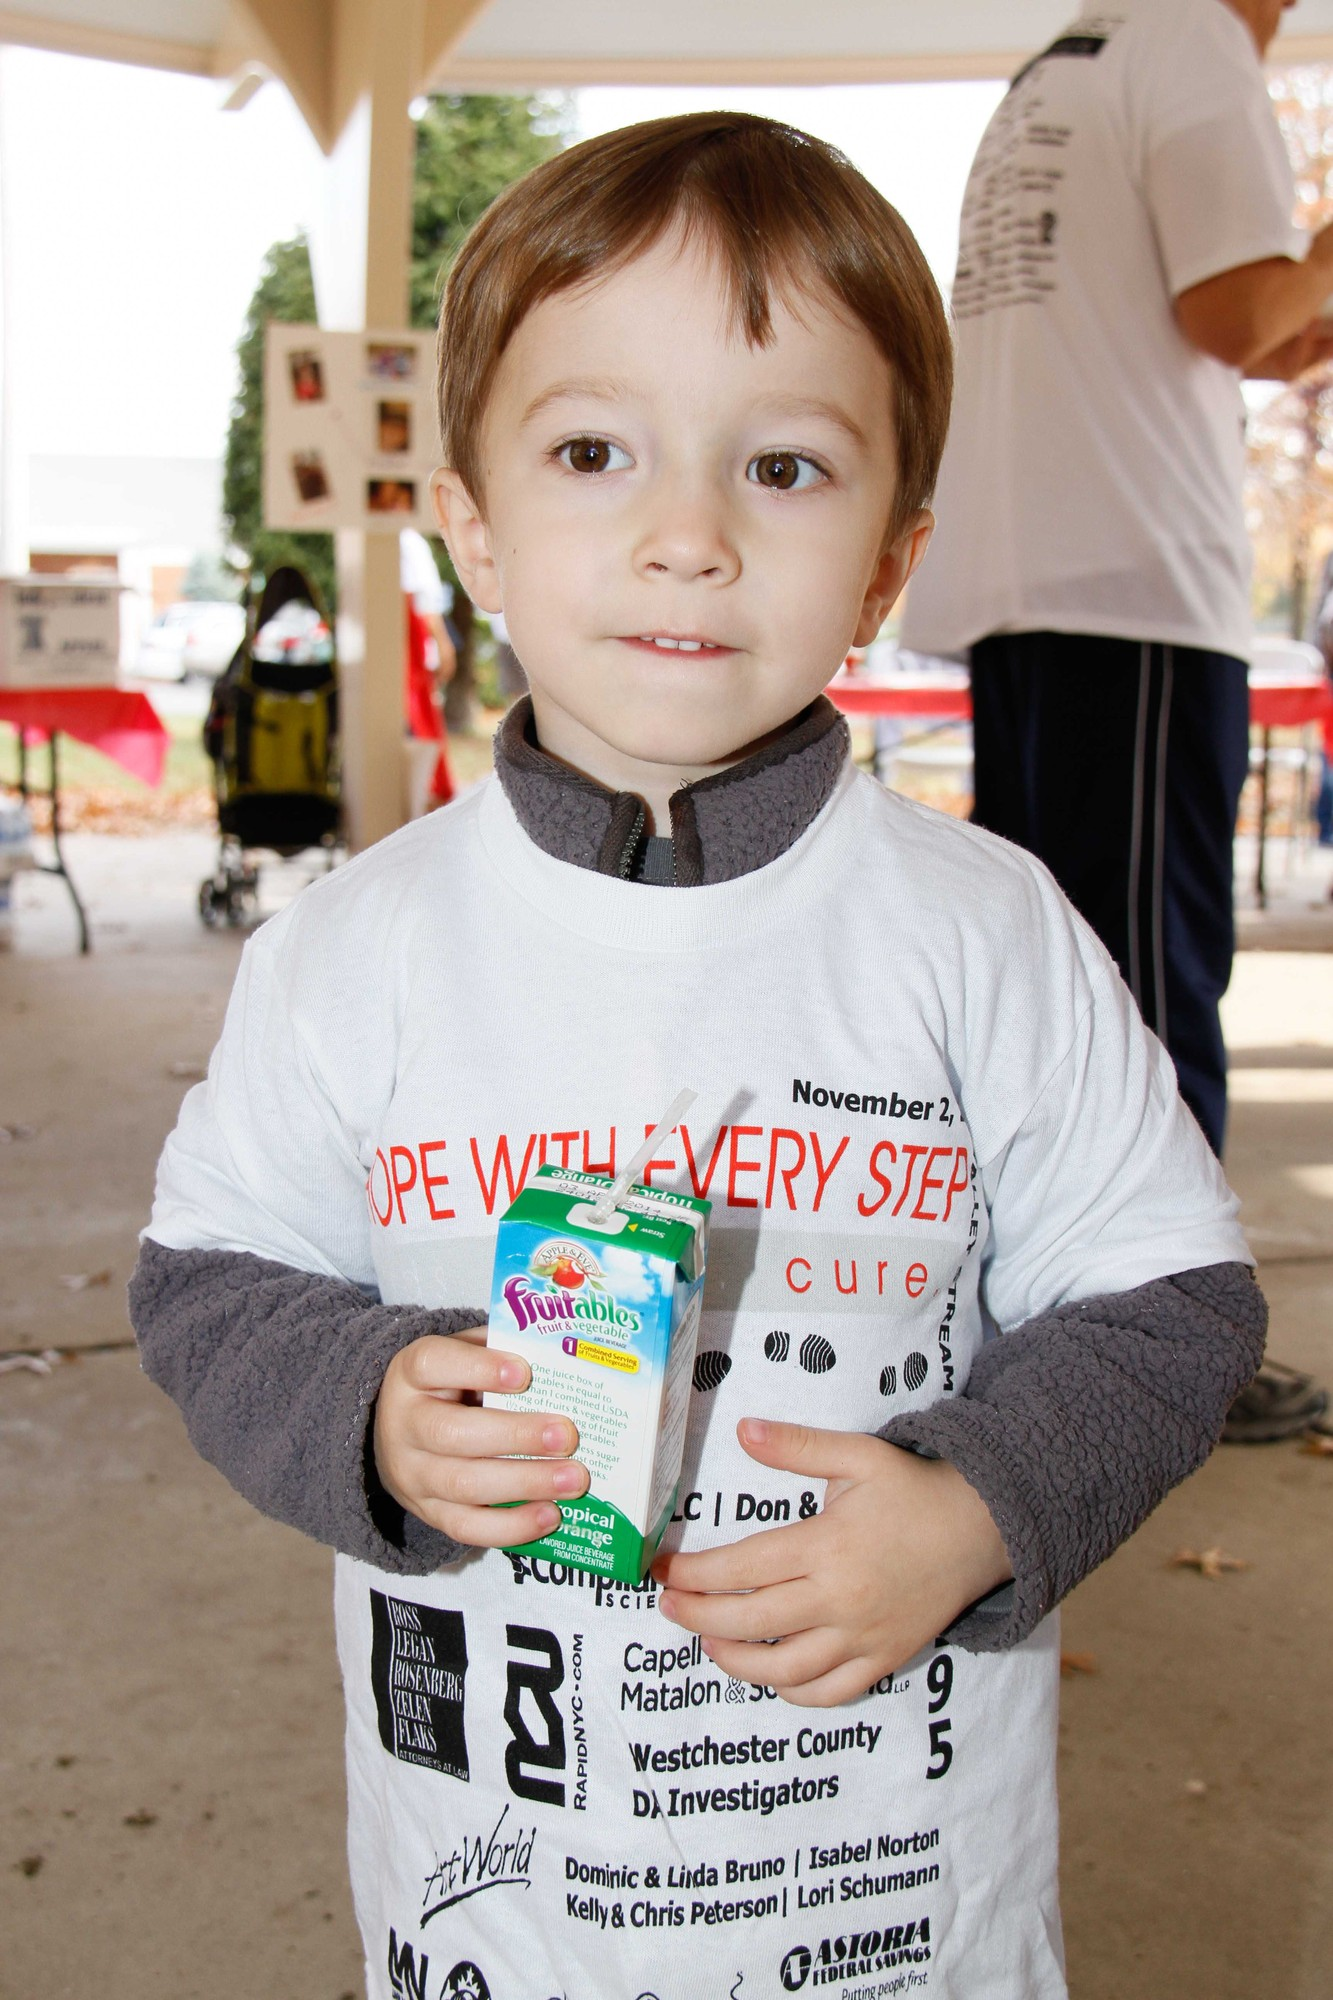 Benjamin Golbig, 3, was one of the youngest walkers.